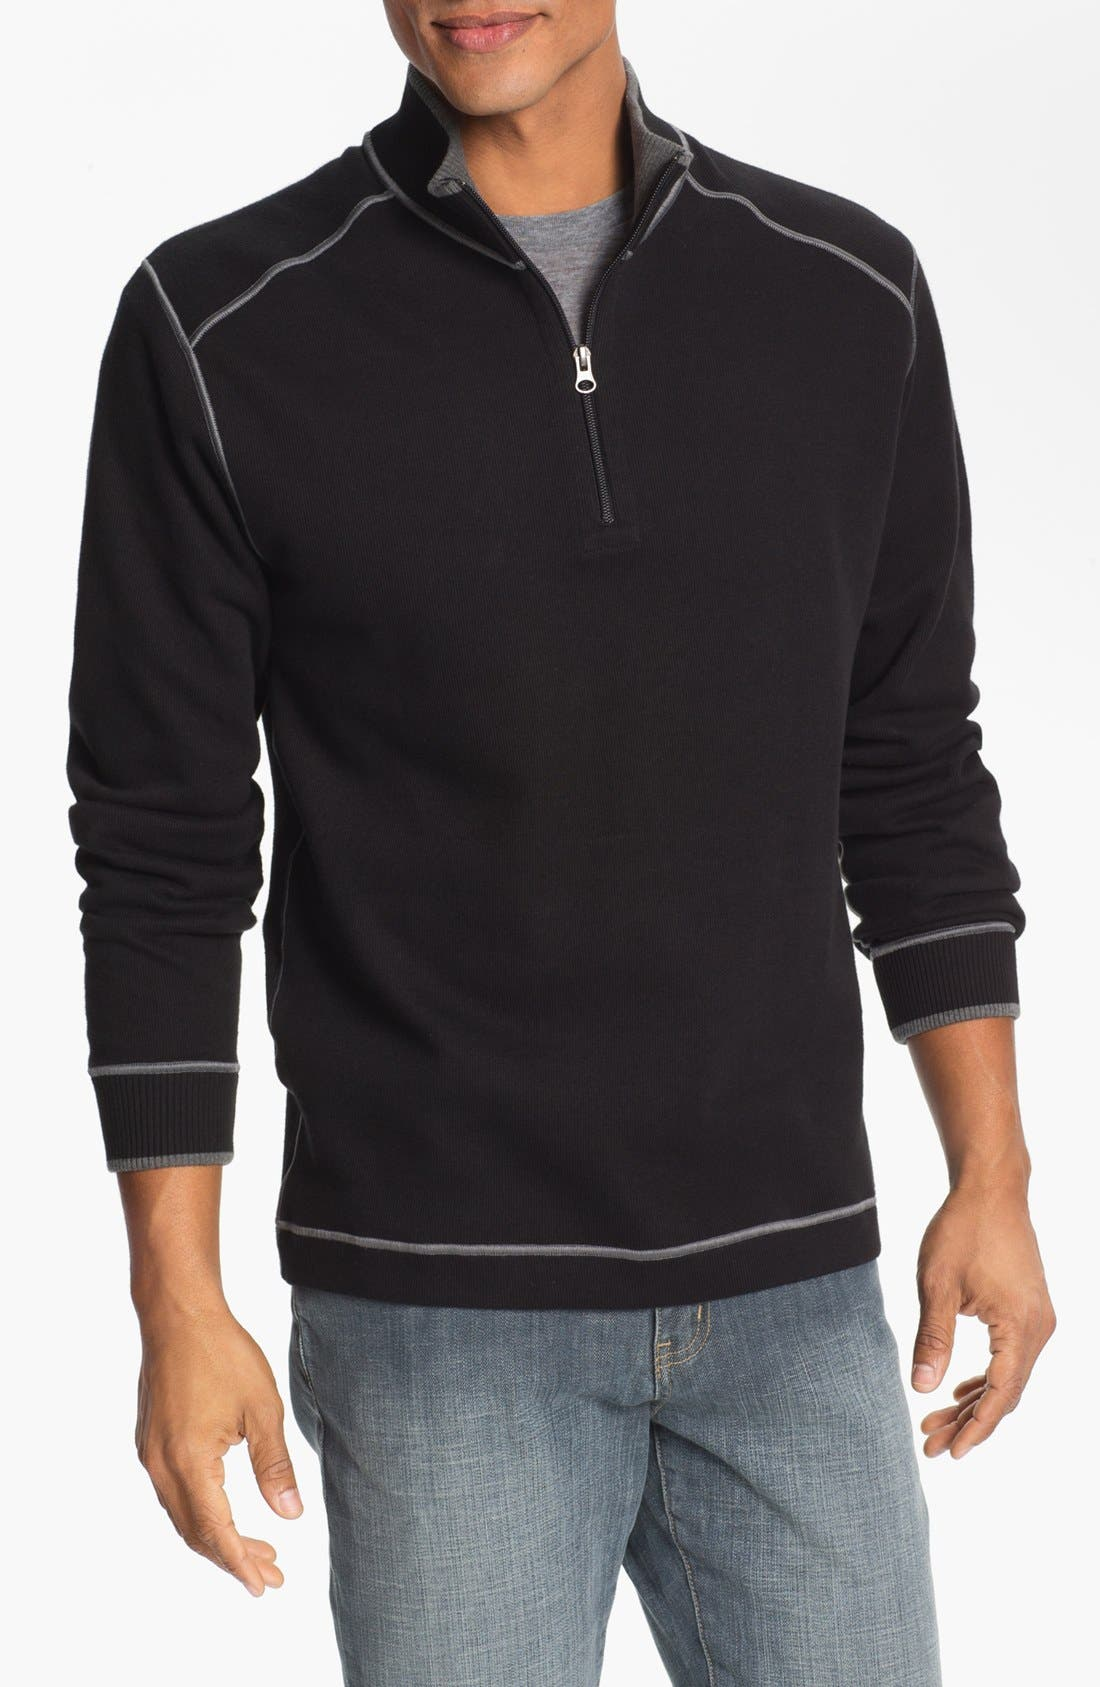 Main Image - Cutter & Buck Regular Fit Quarter Zip Sweater (Regular & Big)